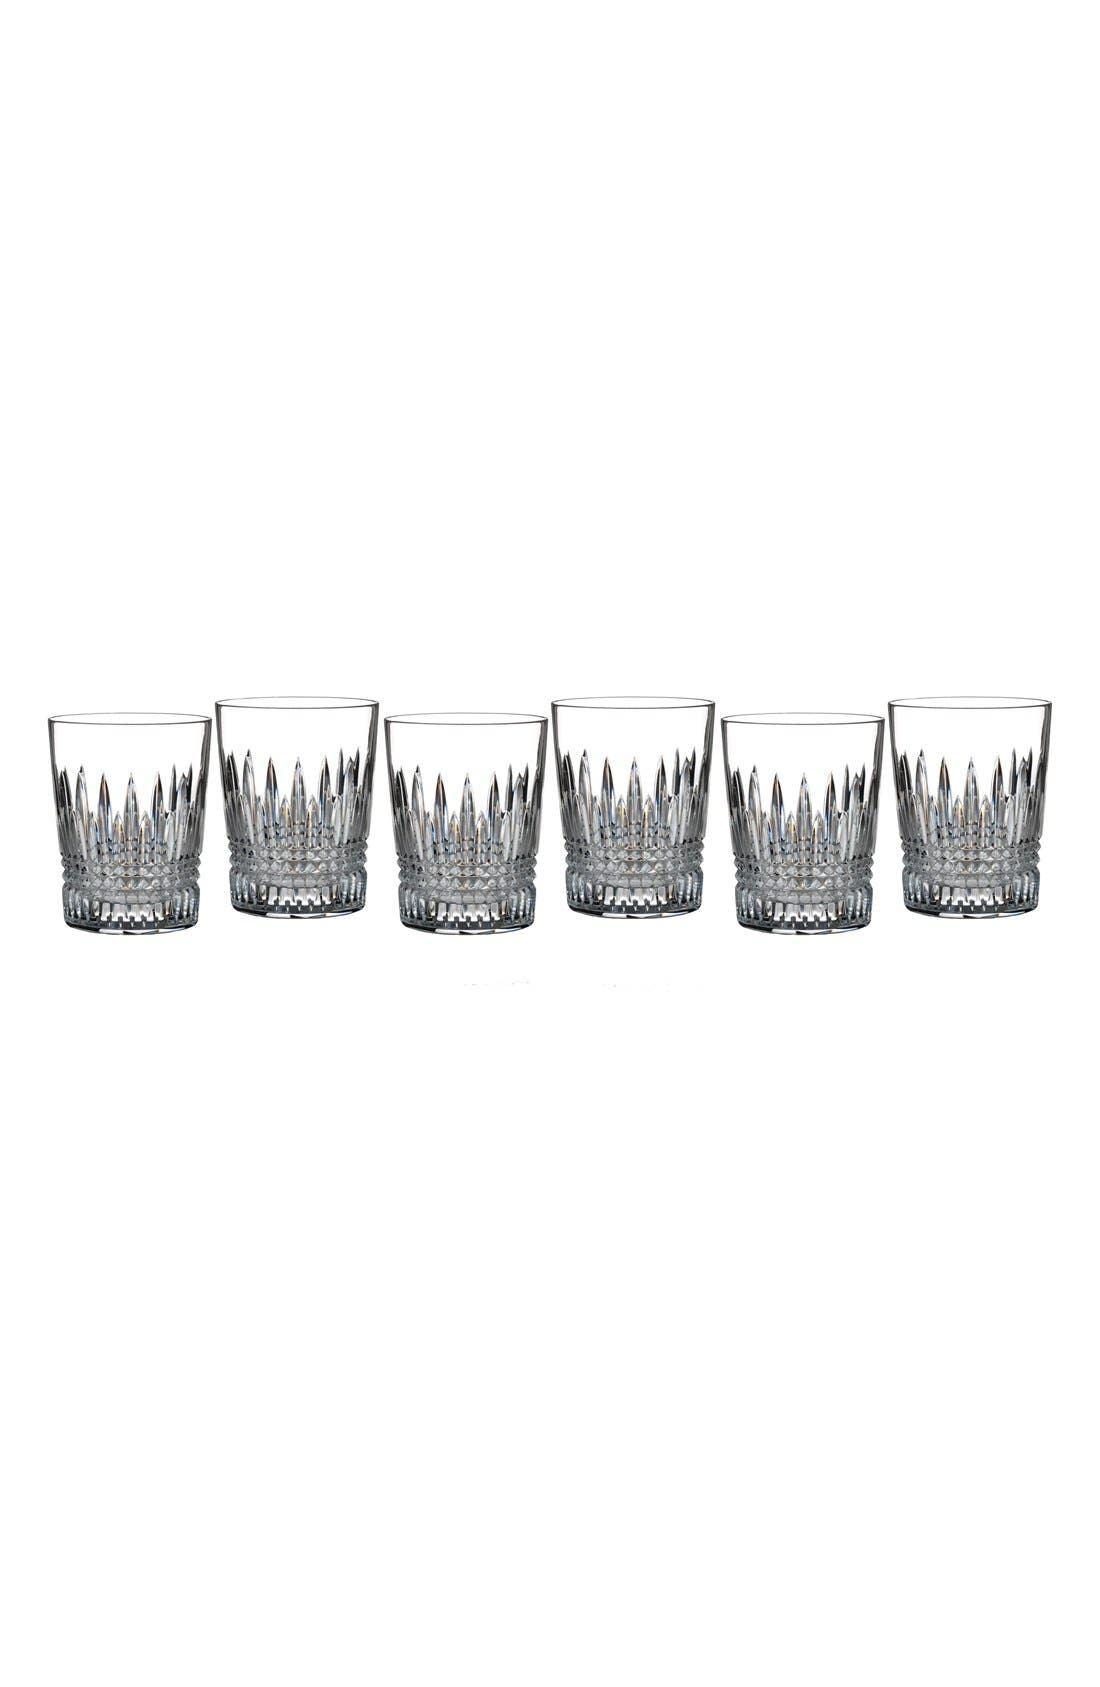 Alternate Image 1 Selected - Waterford 'Lismore Diamond' Lead Crystal Double Old Fashioned Glasses (Set of 6)